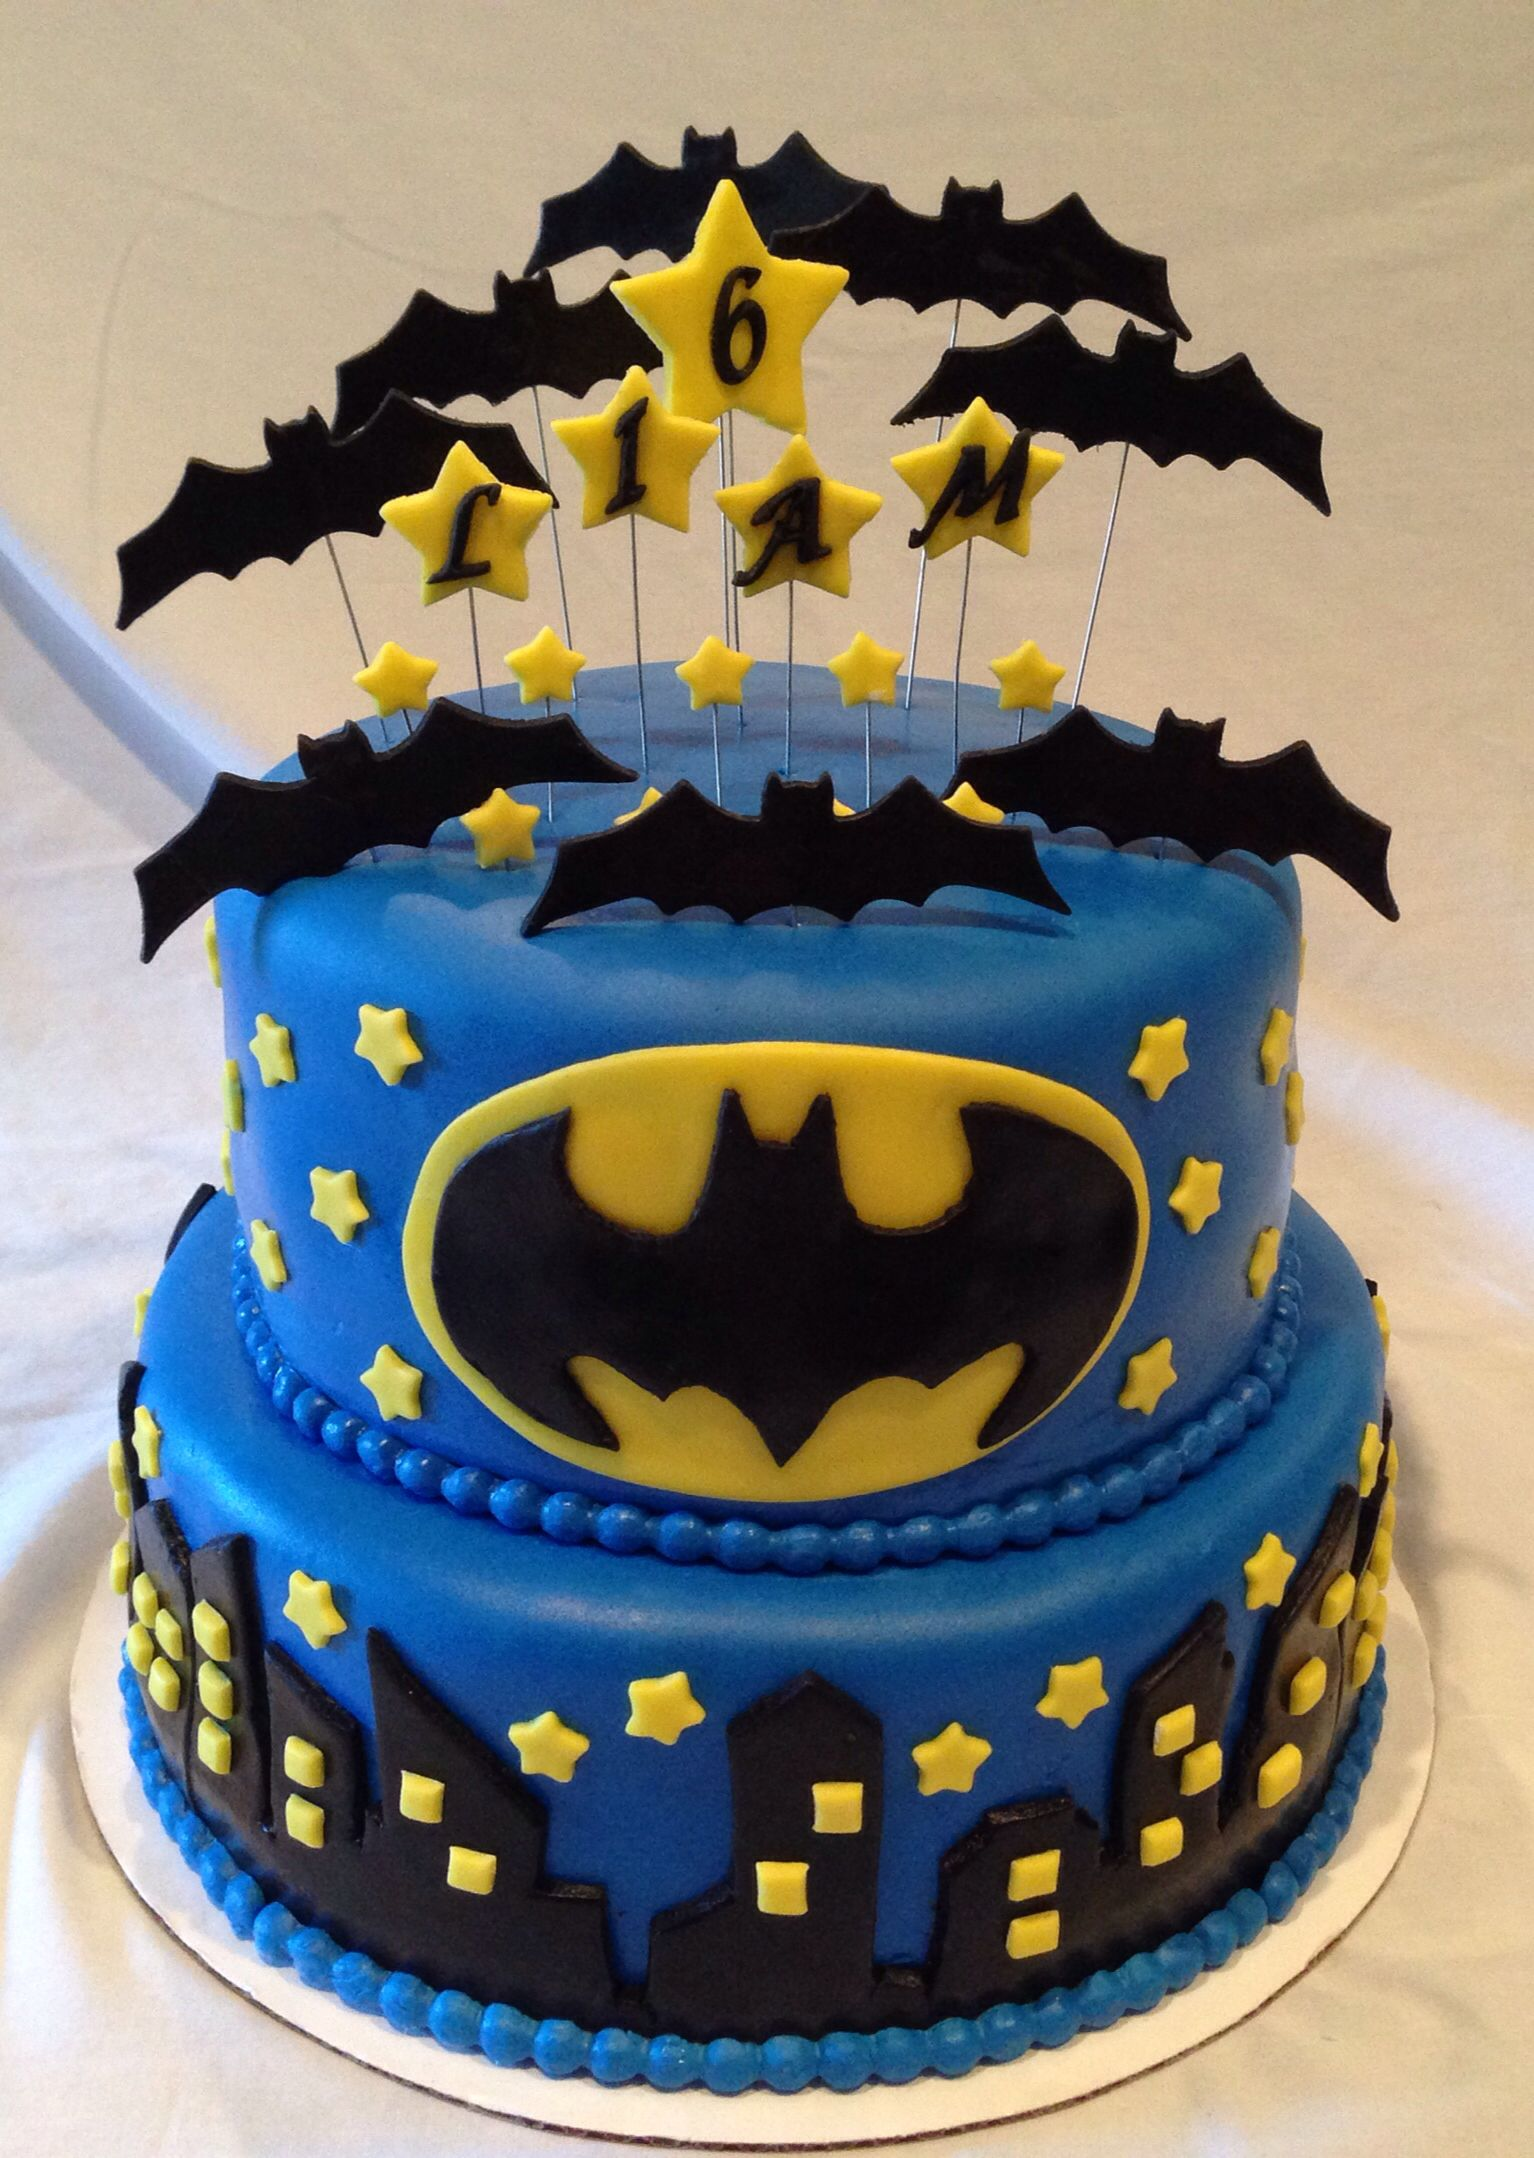 Batman Cake Sweet Treats by Cherie Pinterest Batman cakes, Batman and Cake